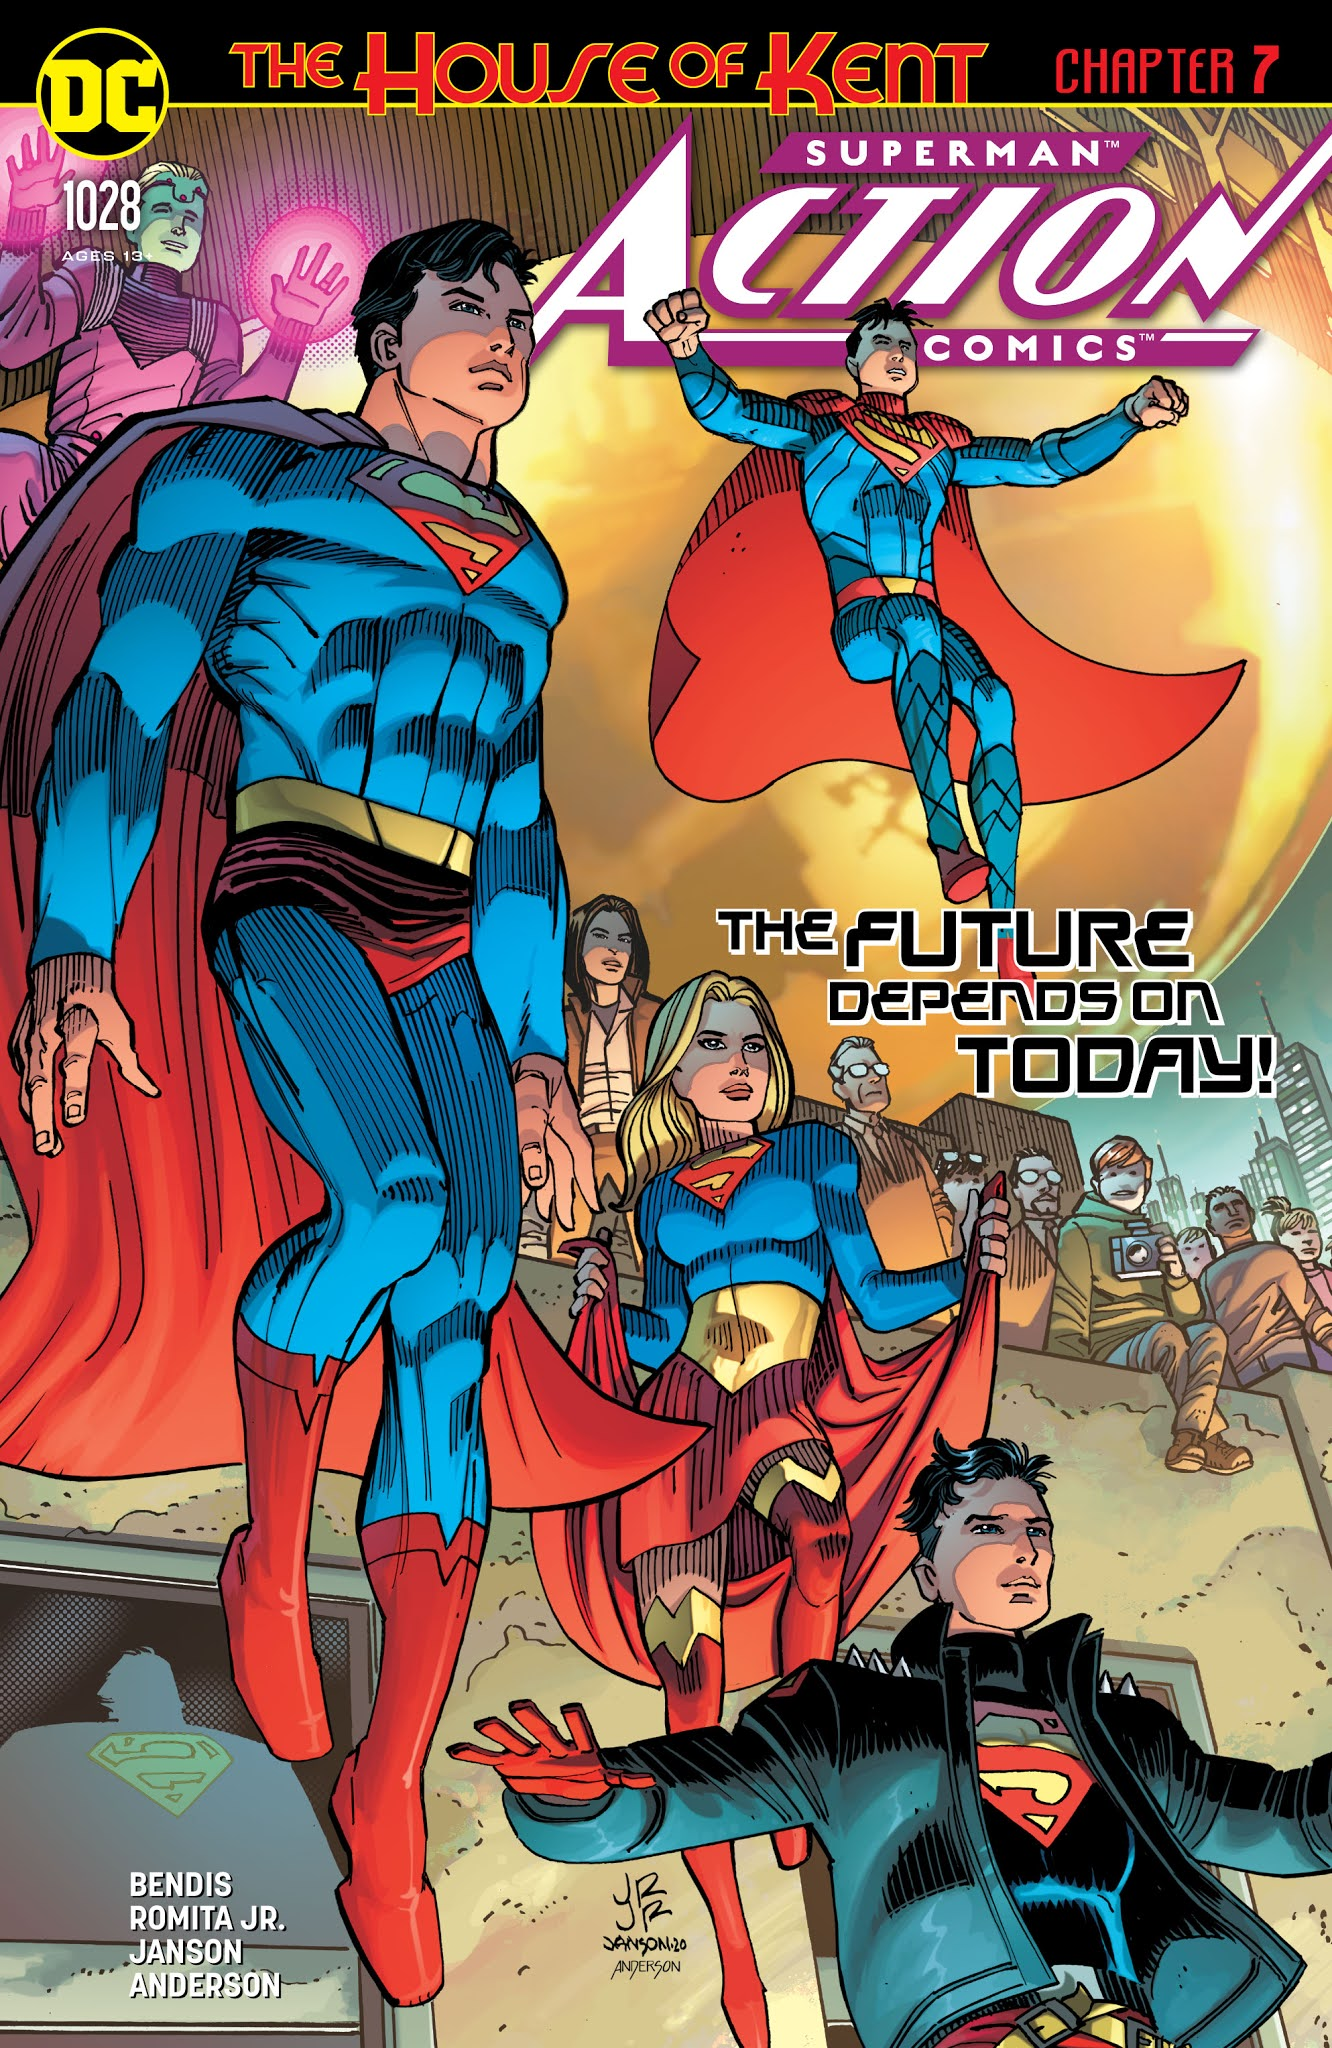 Action Comics #1028 Review - The Aspiring Kryptonian